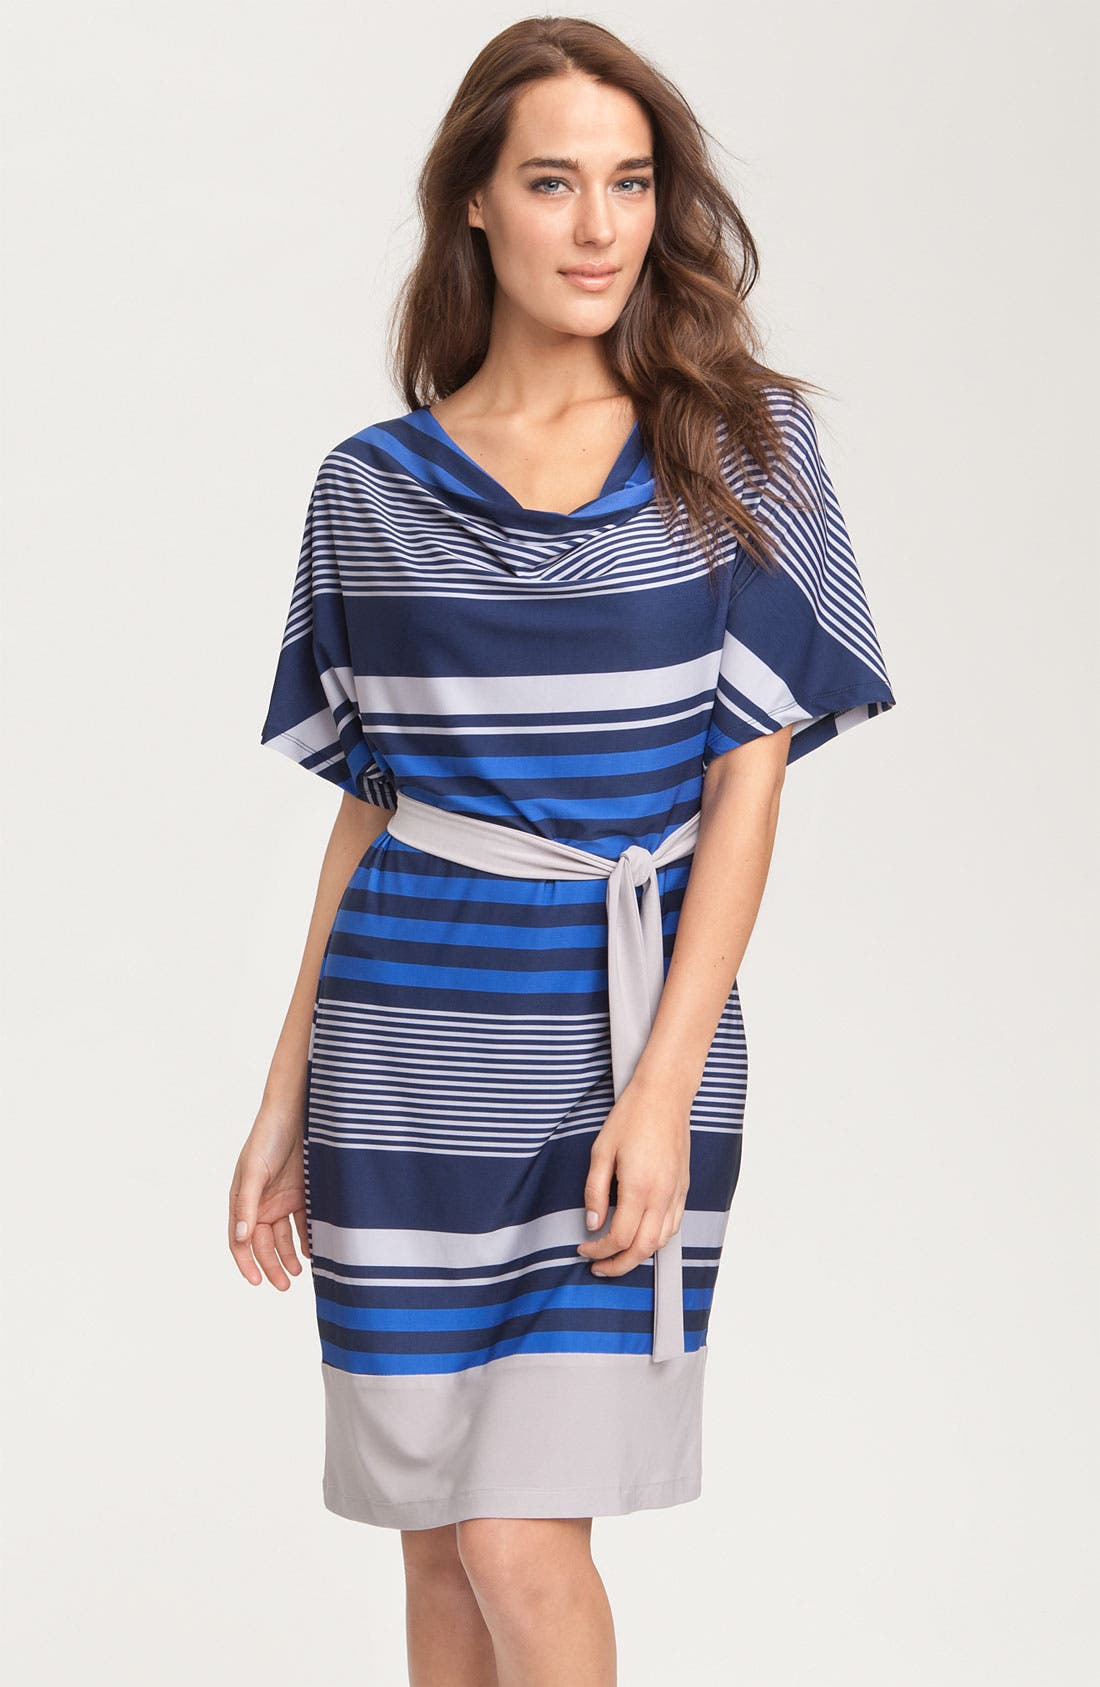 Alternate Image 1 Selected - Alex & Ava Stripe Cowl Neck Jersey Dress (Petite)